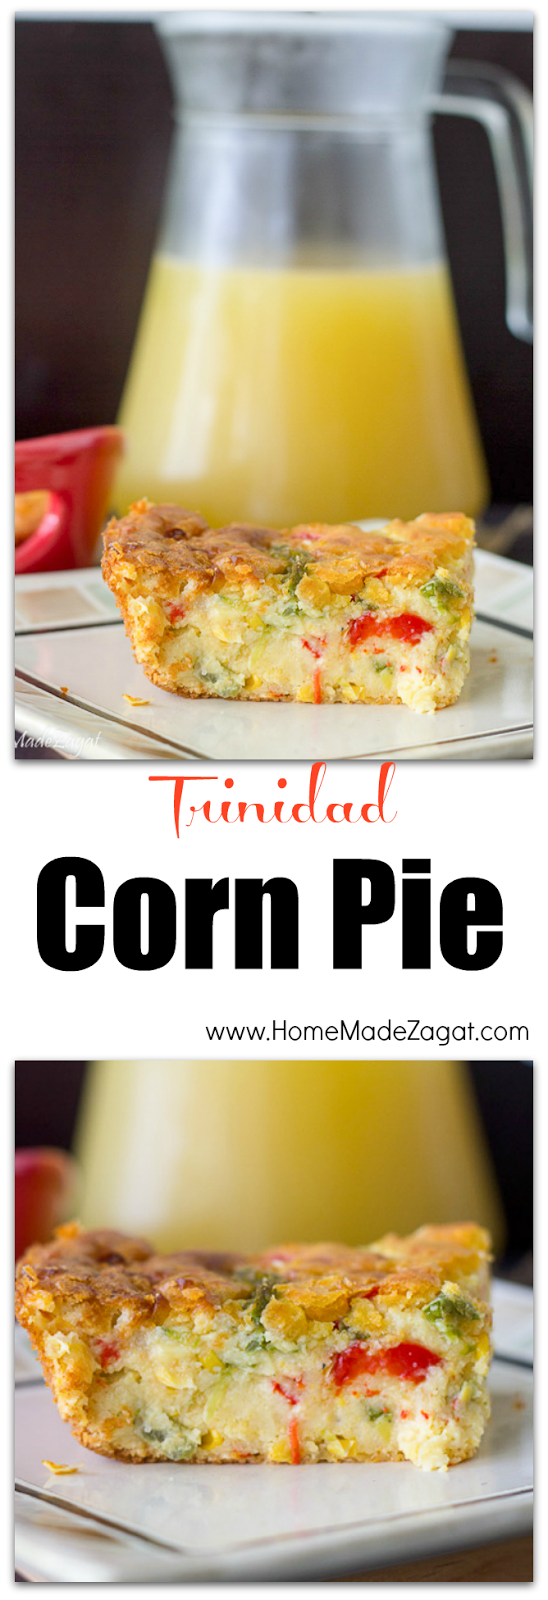 Easy Trinidad Corn Pie | Home Made Zagat